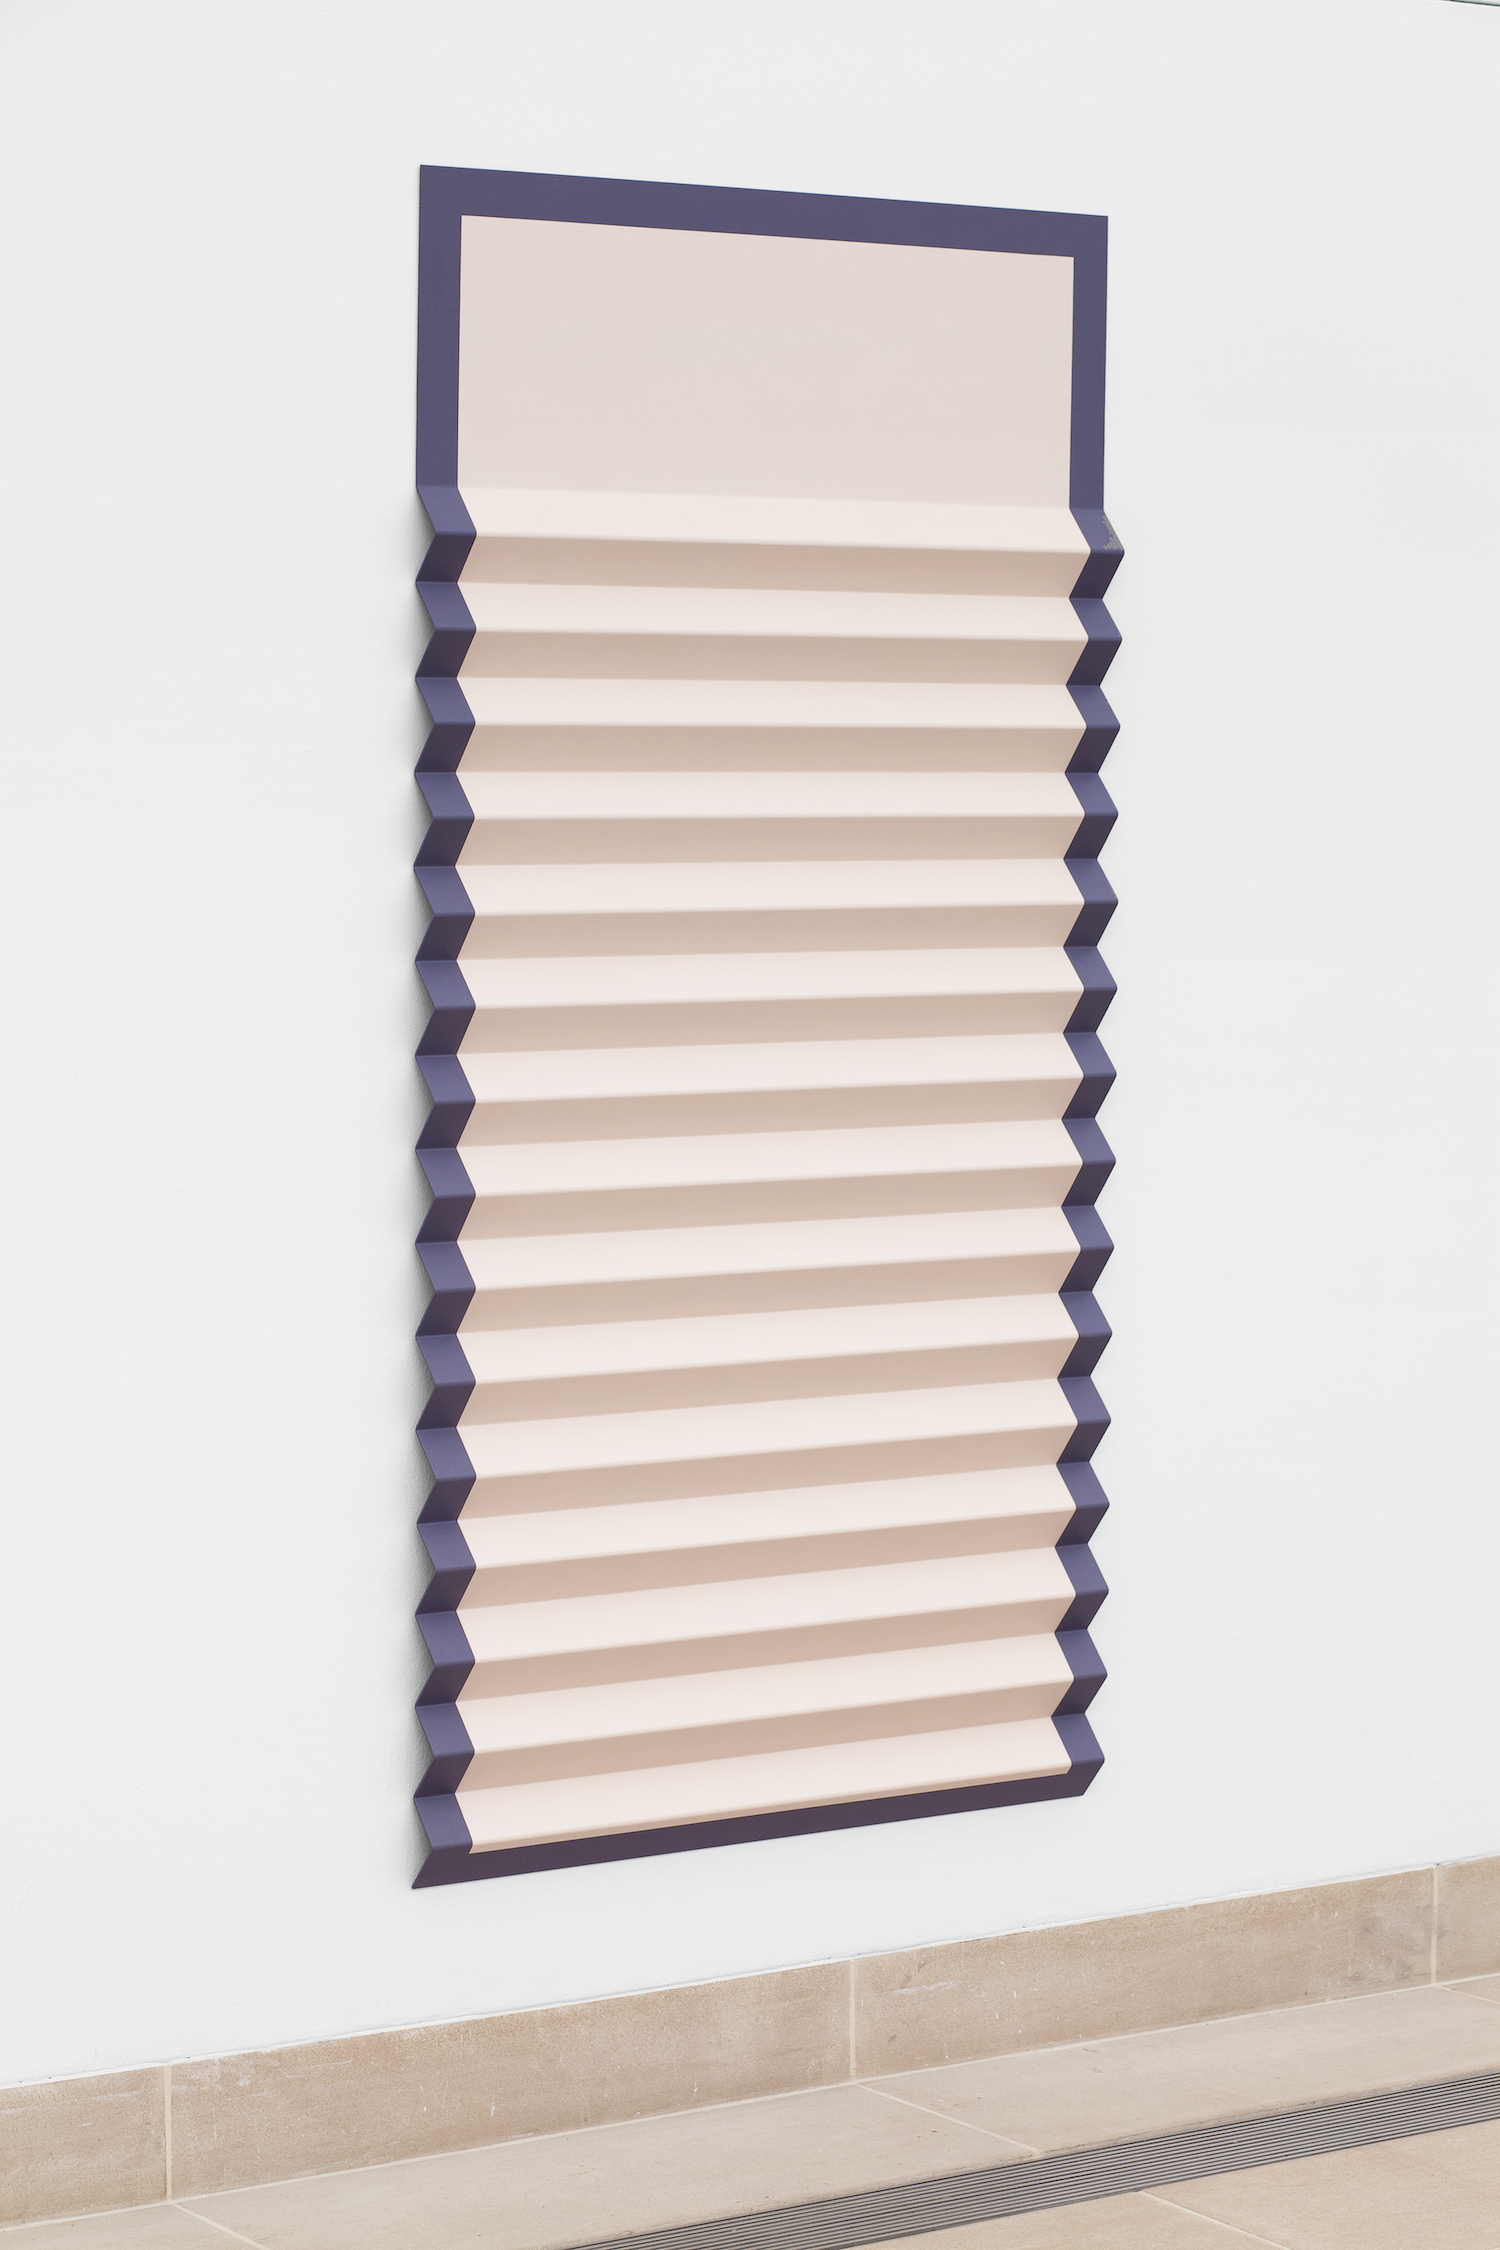 Lisa Williamson  Bed Shade with Margins  2012 Acrylic and graphite transfer on powder-coated aluminum 72h x 36w x 2d in LW097